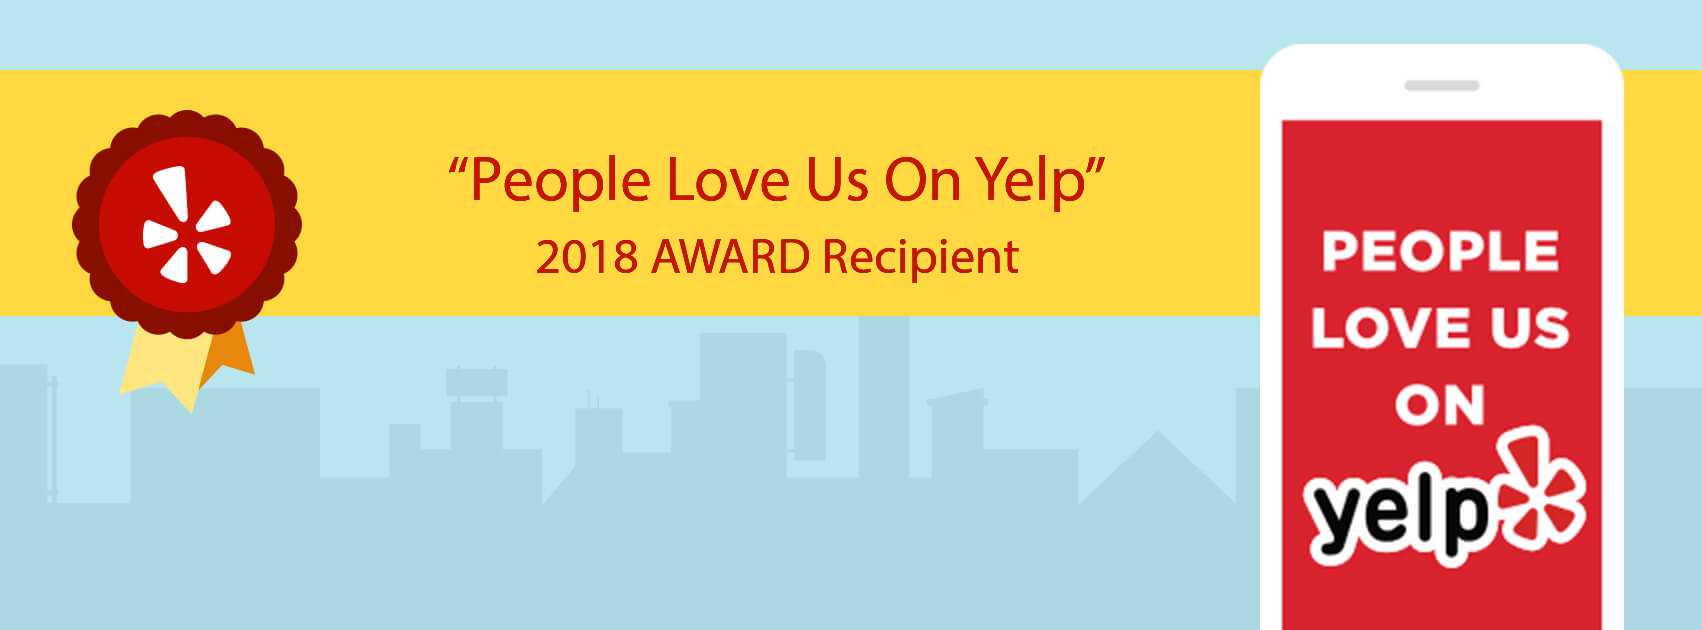 People Love Us on Yelp 2017 Award Winner